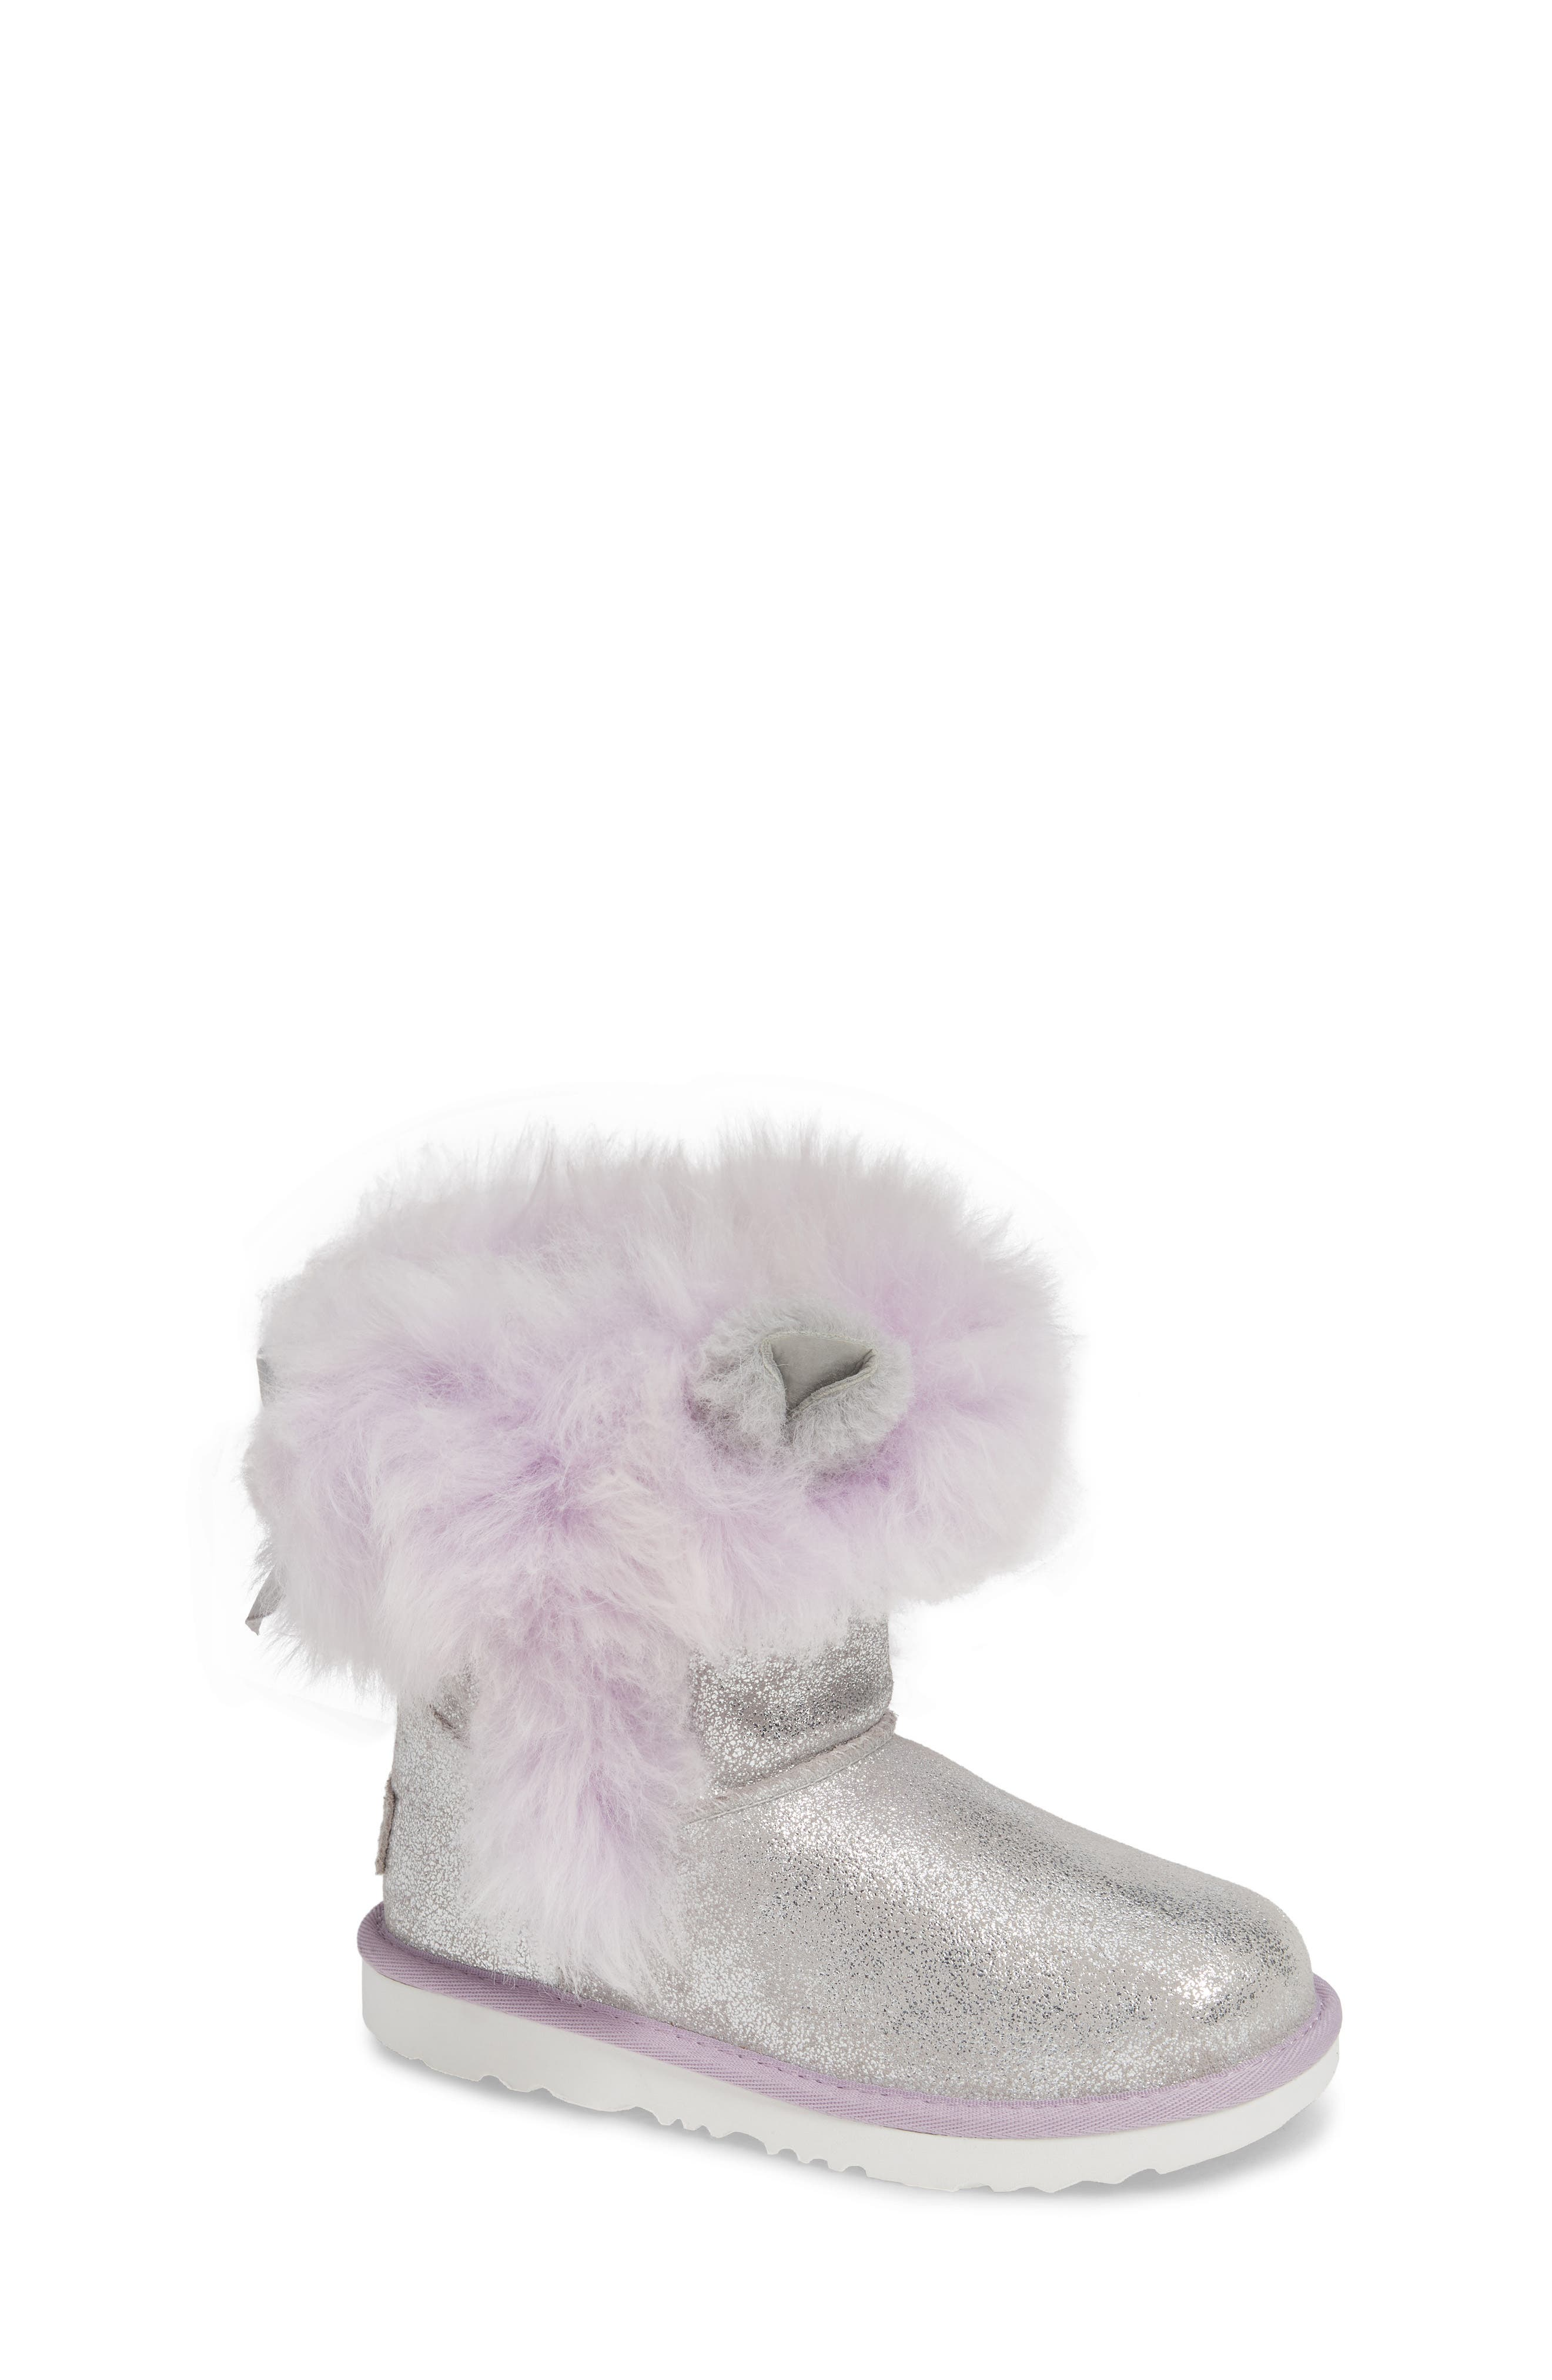 Maizey Classic Genuine Shearling Glitter Boot,                         Main,                         color, SILVER / LAVENDER